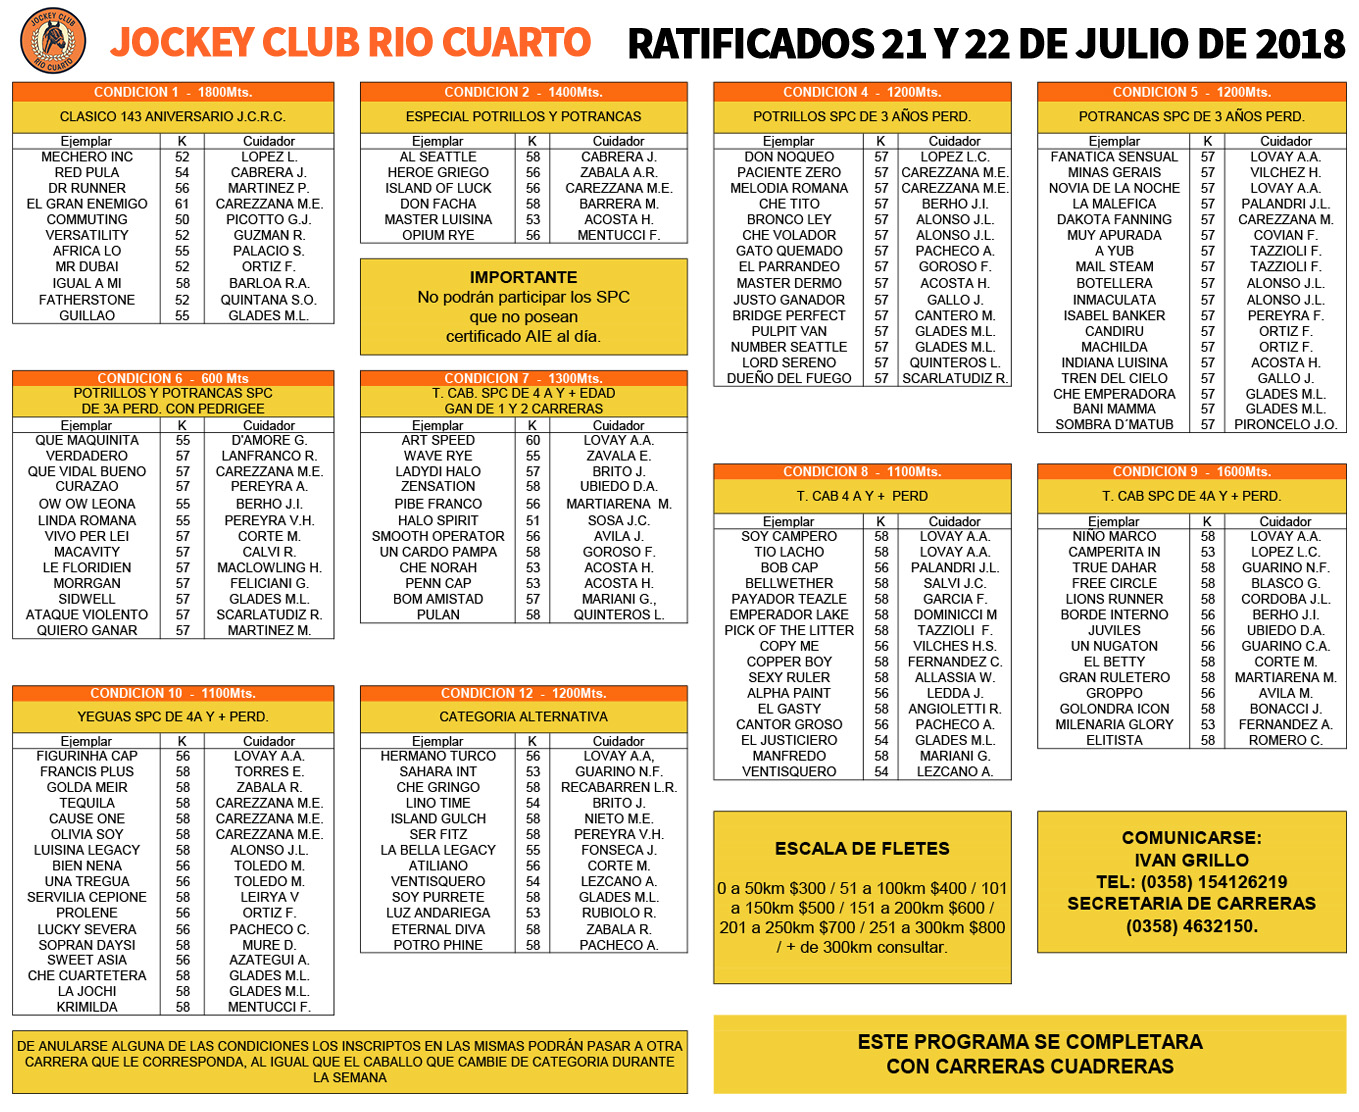 Ratificados 21 y 22 de Julio de 2018 - Jockey Club Río Cuarto